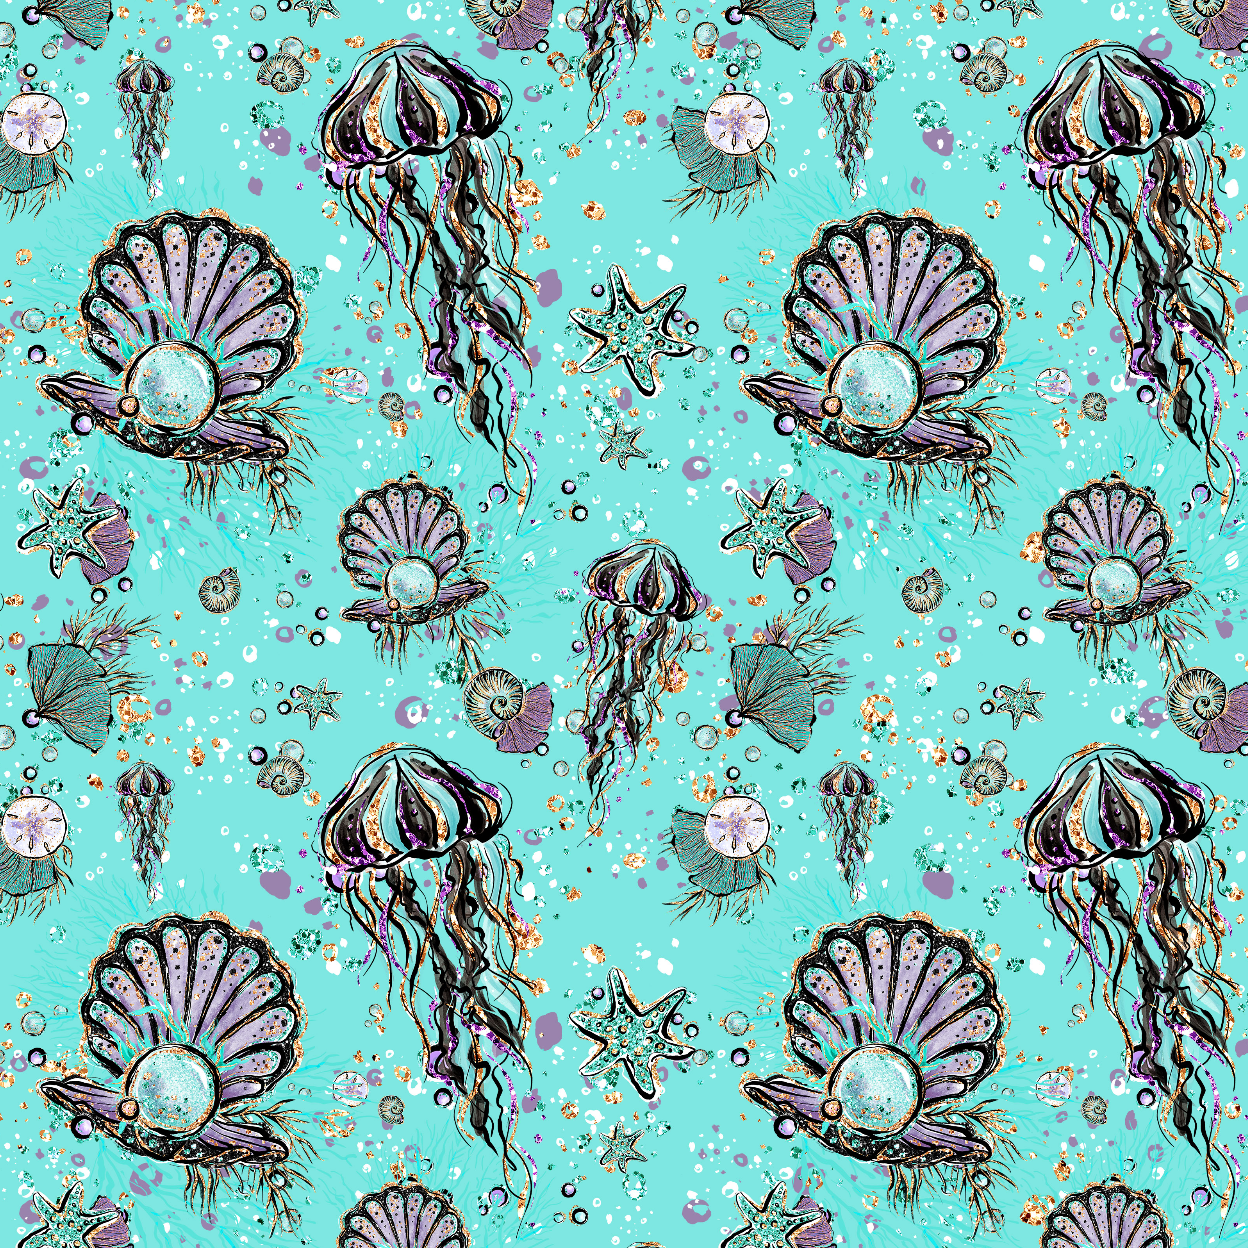 IN STOCK - Audrey Jelly Fish - Digital Fabric Print